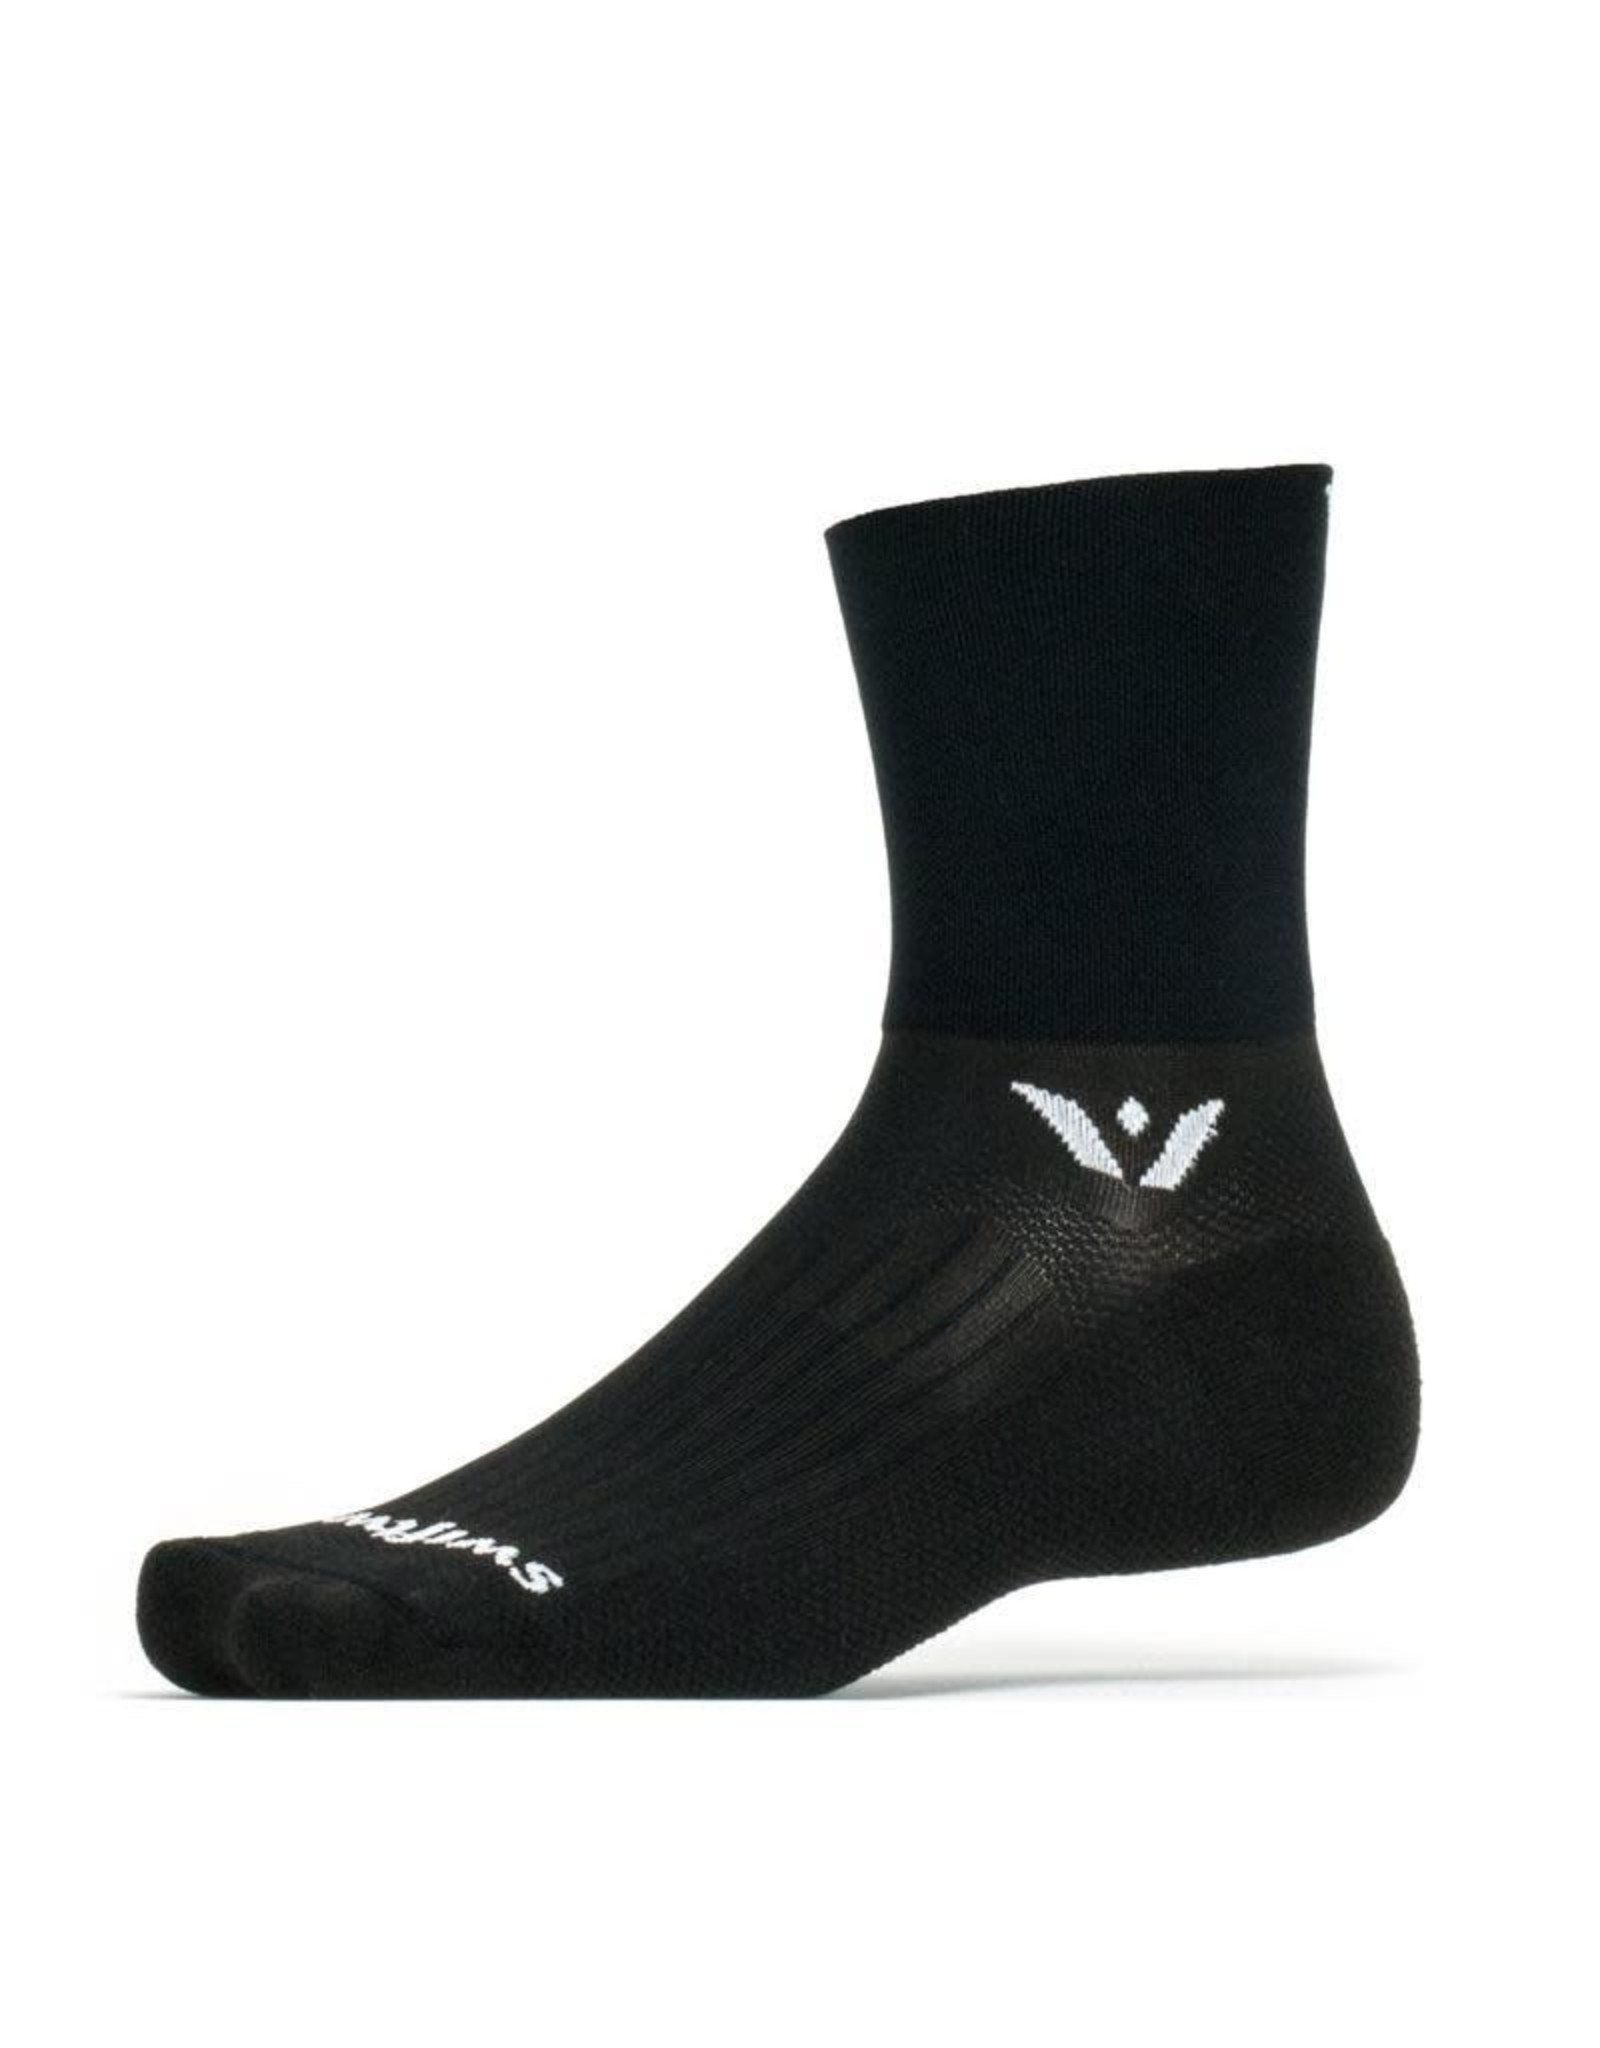 SWIFTWICK Swiftwick Aspire Four Sock